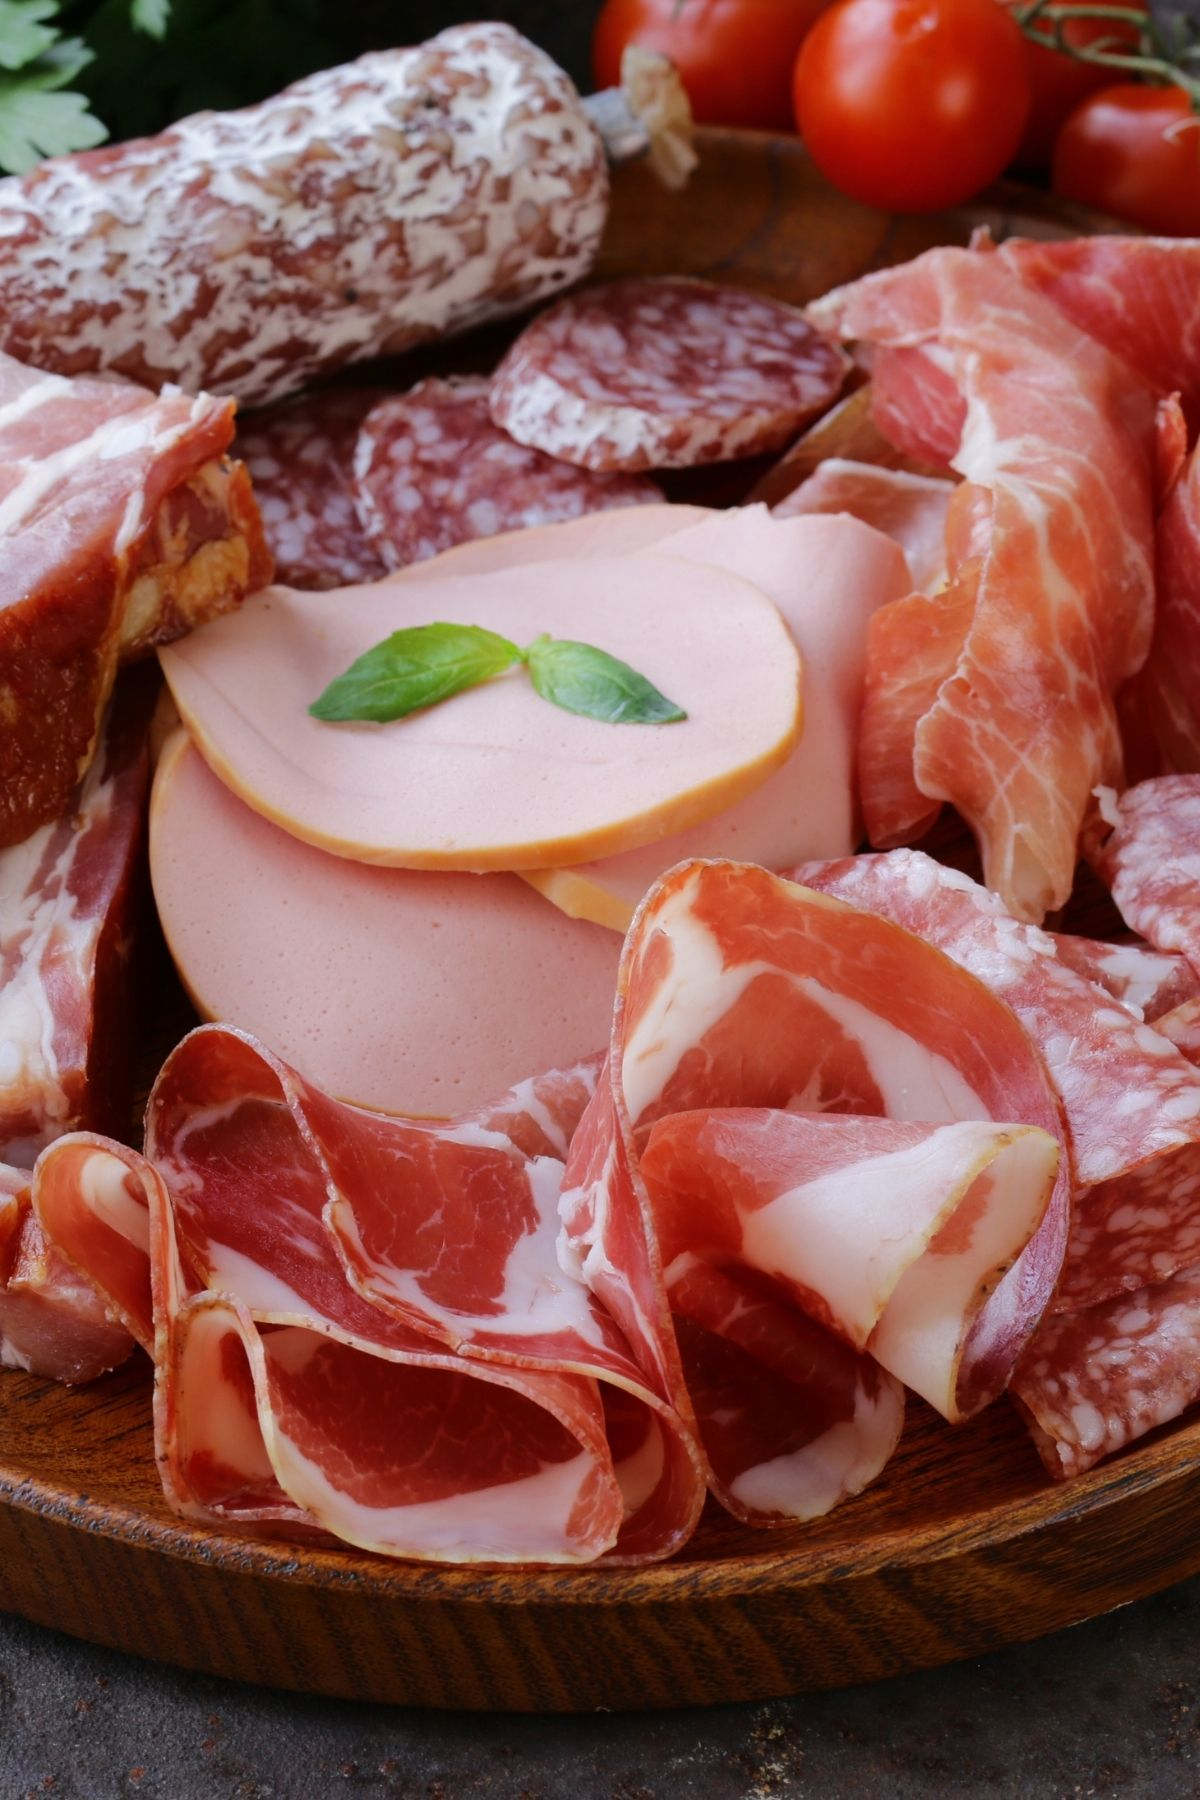 Several different deli meats including cold cuts, salami and pepperoni on cutting board.